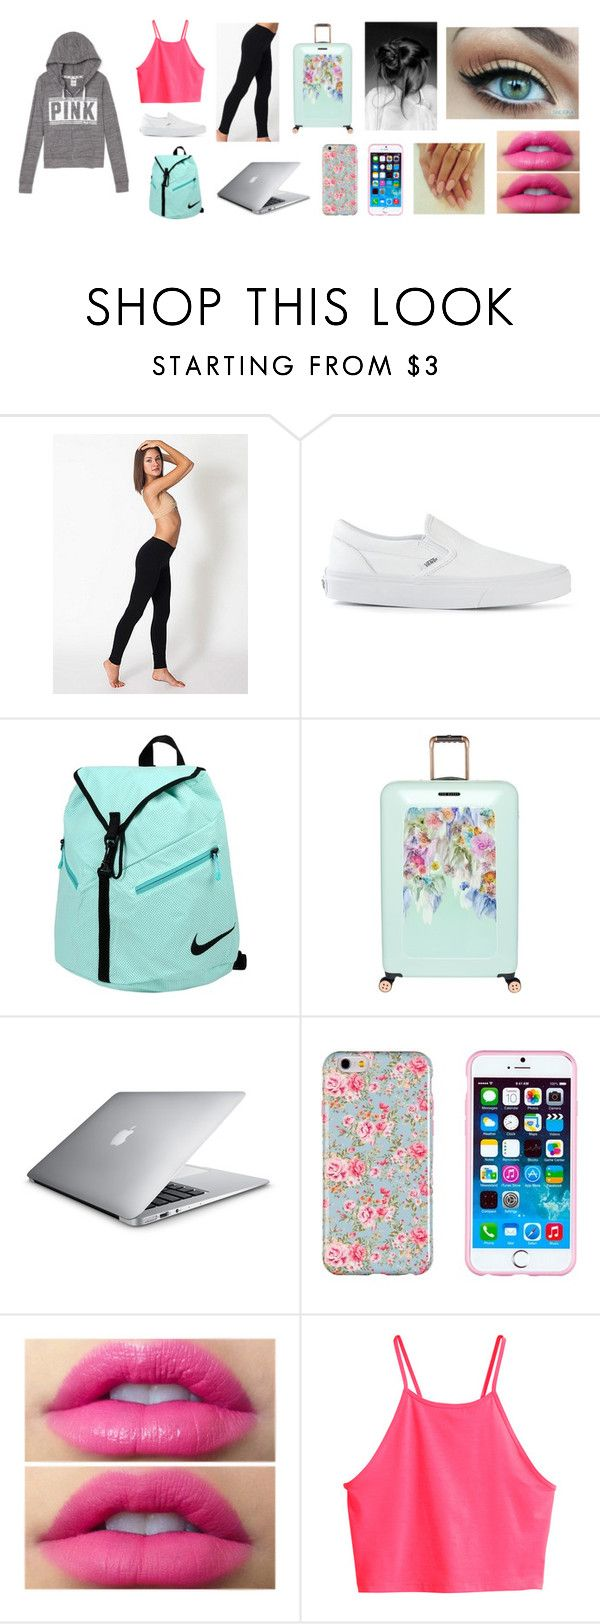 """""""Desy : Road Trip to Cali"""" by livelovebreathedesy ❤ liked on Polyvore featuring American Apparel, Vans, NIKE, Ted Baker and H&M"""